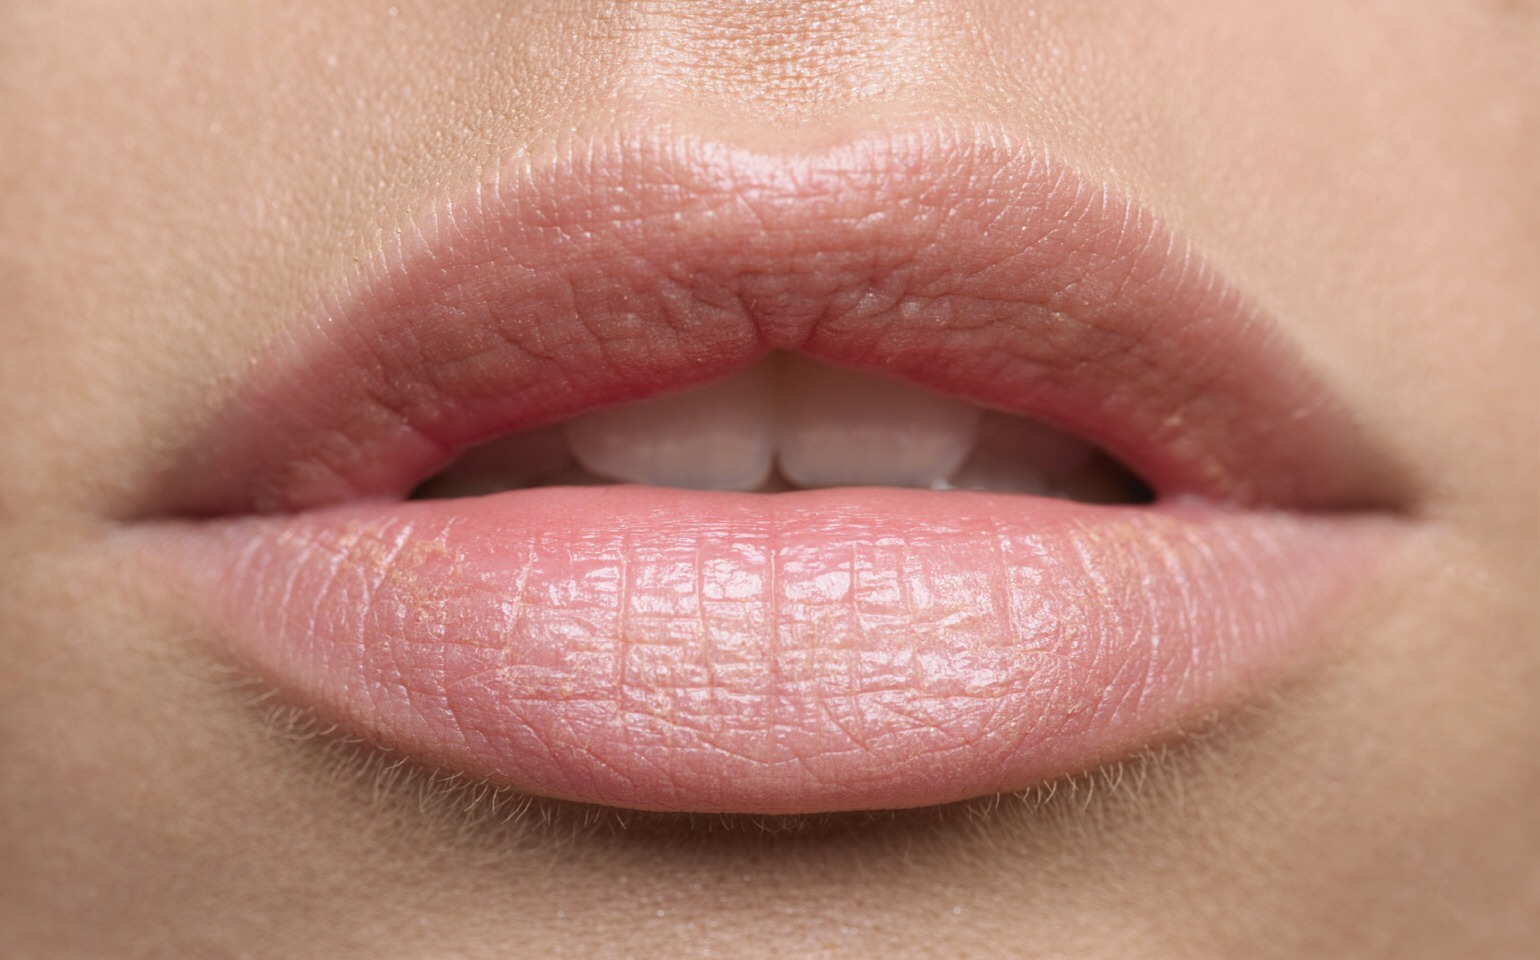 Do your lips ever get chapped and have too much dead skin? Well I have the solution!